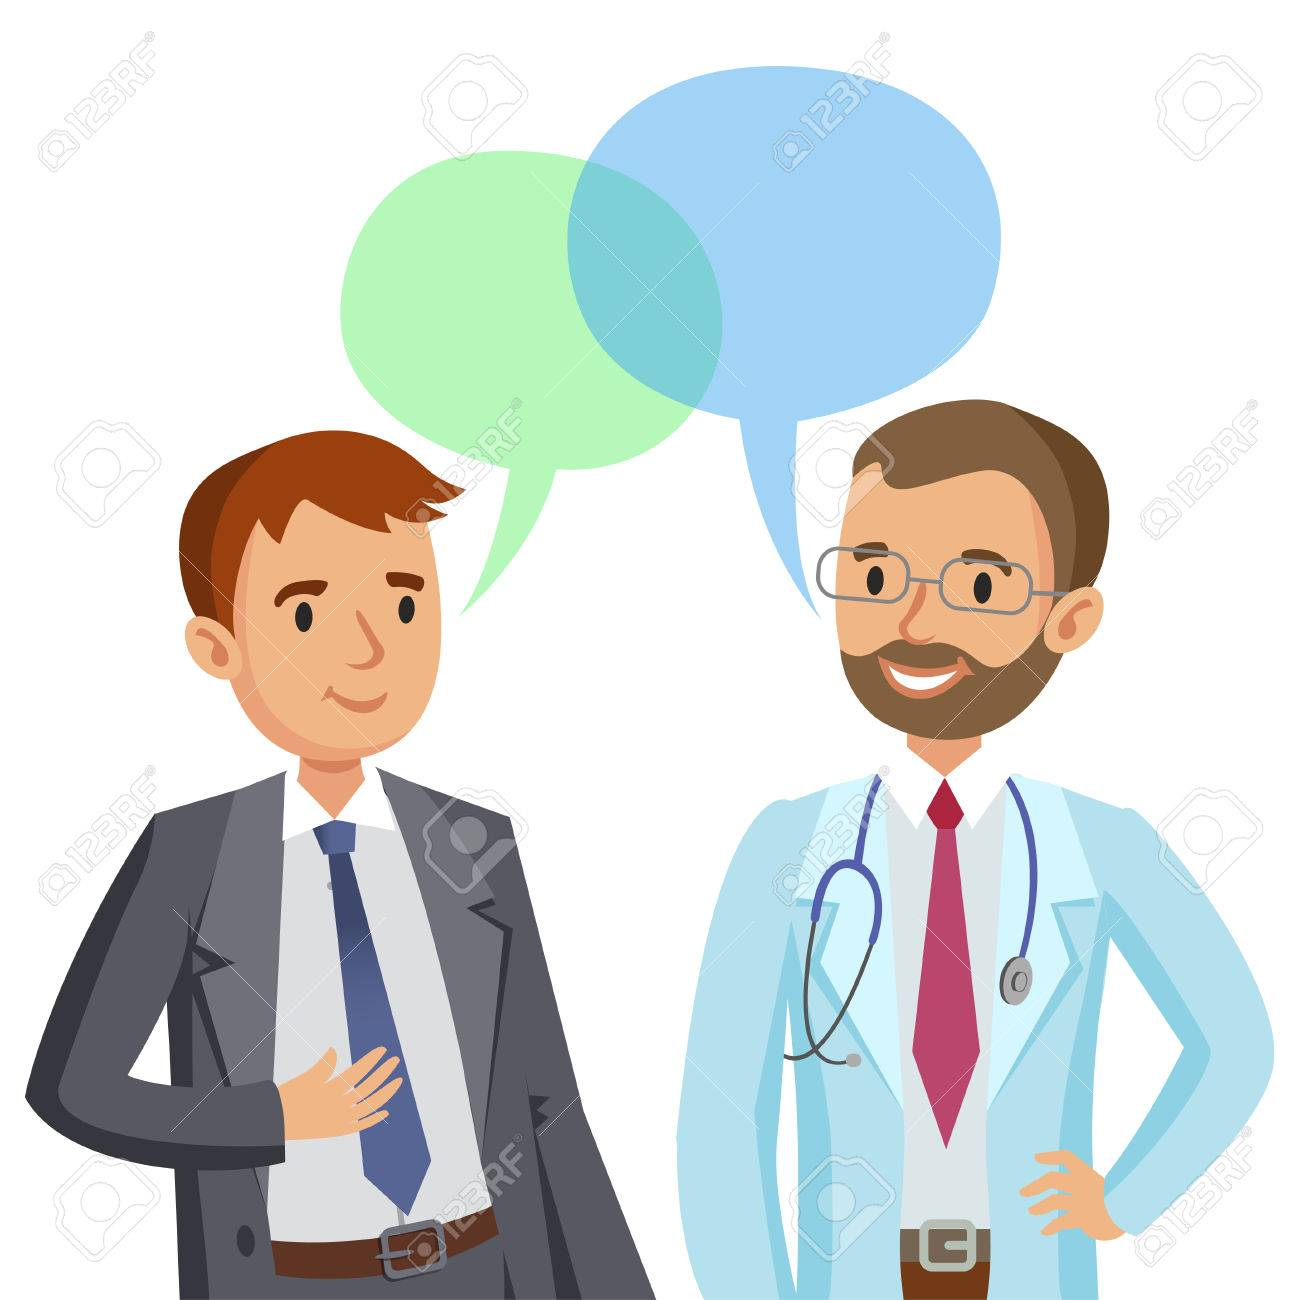 Doctor and patient. Man talking to physician. Vector illustration - 62275496